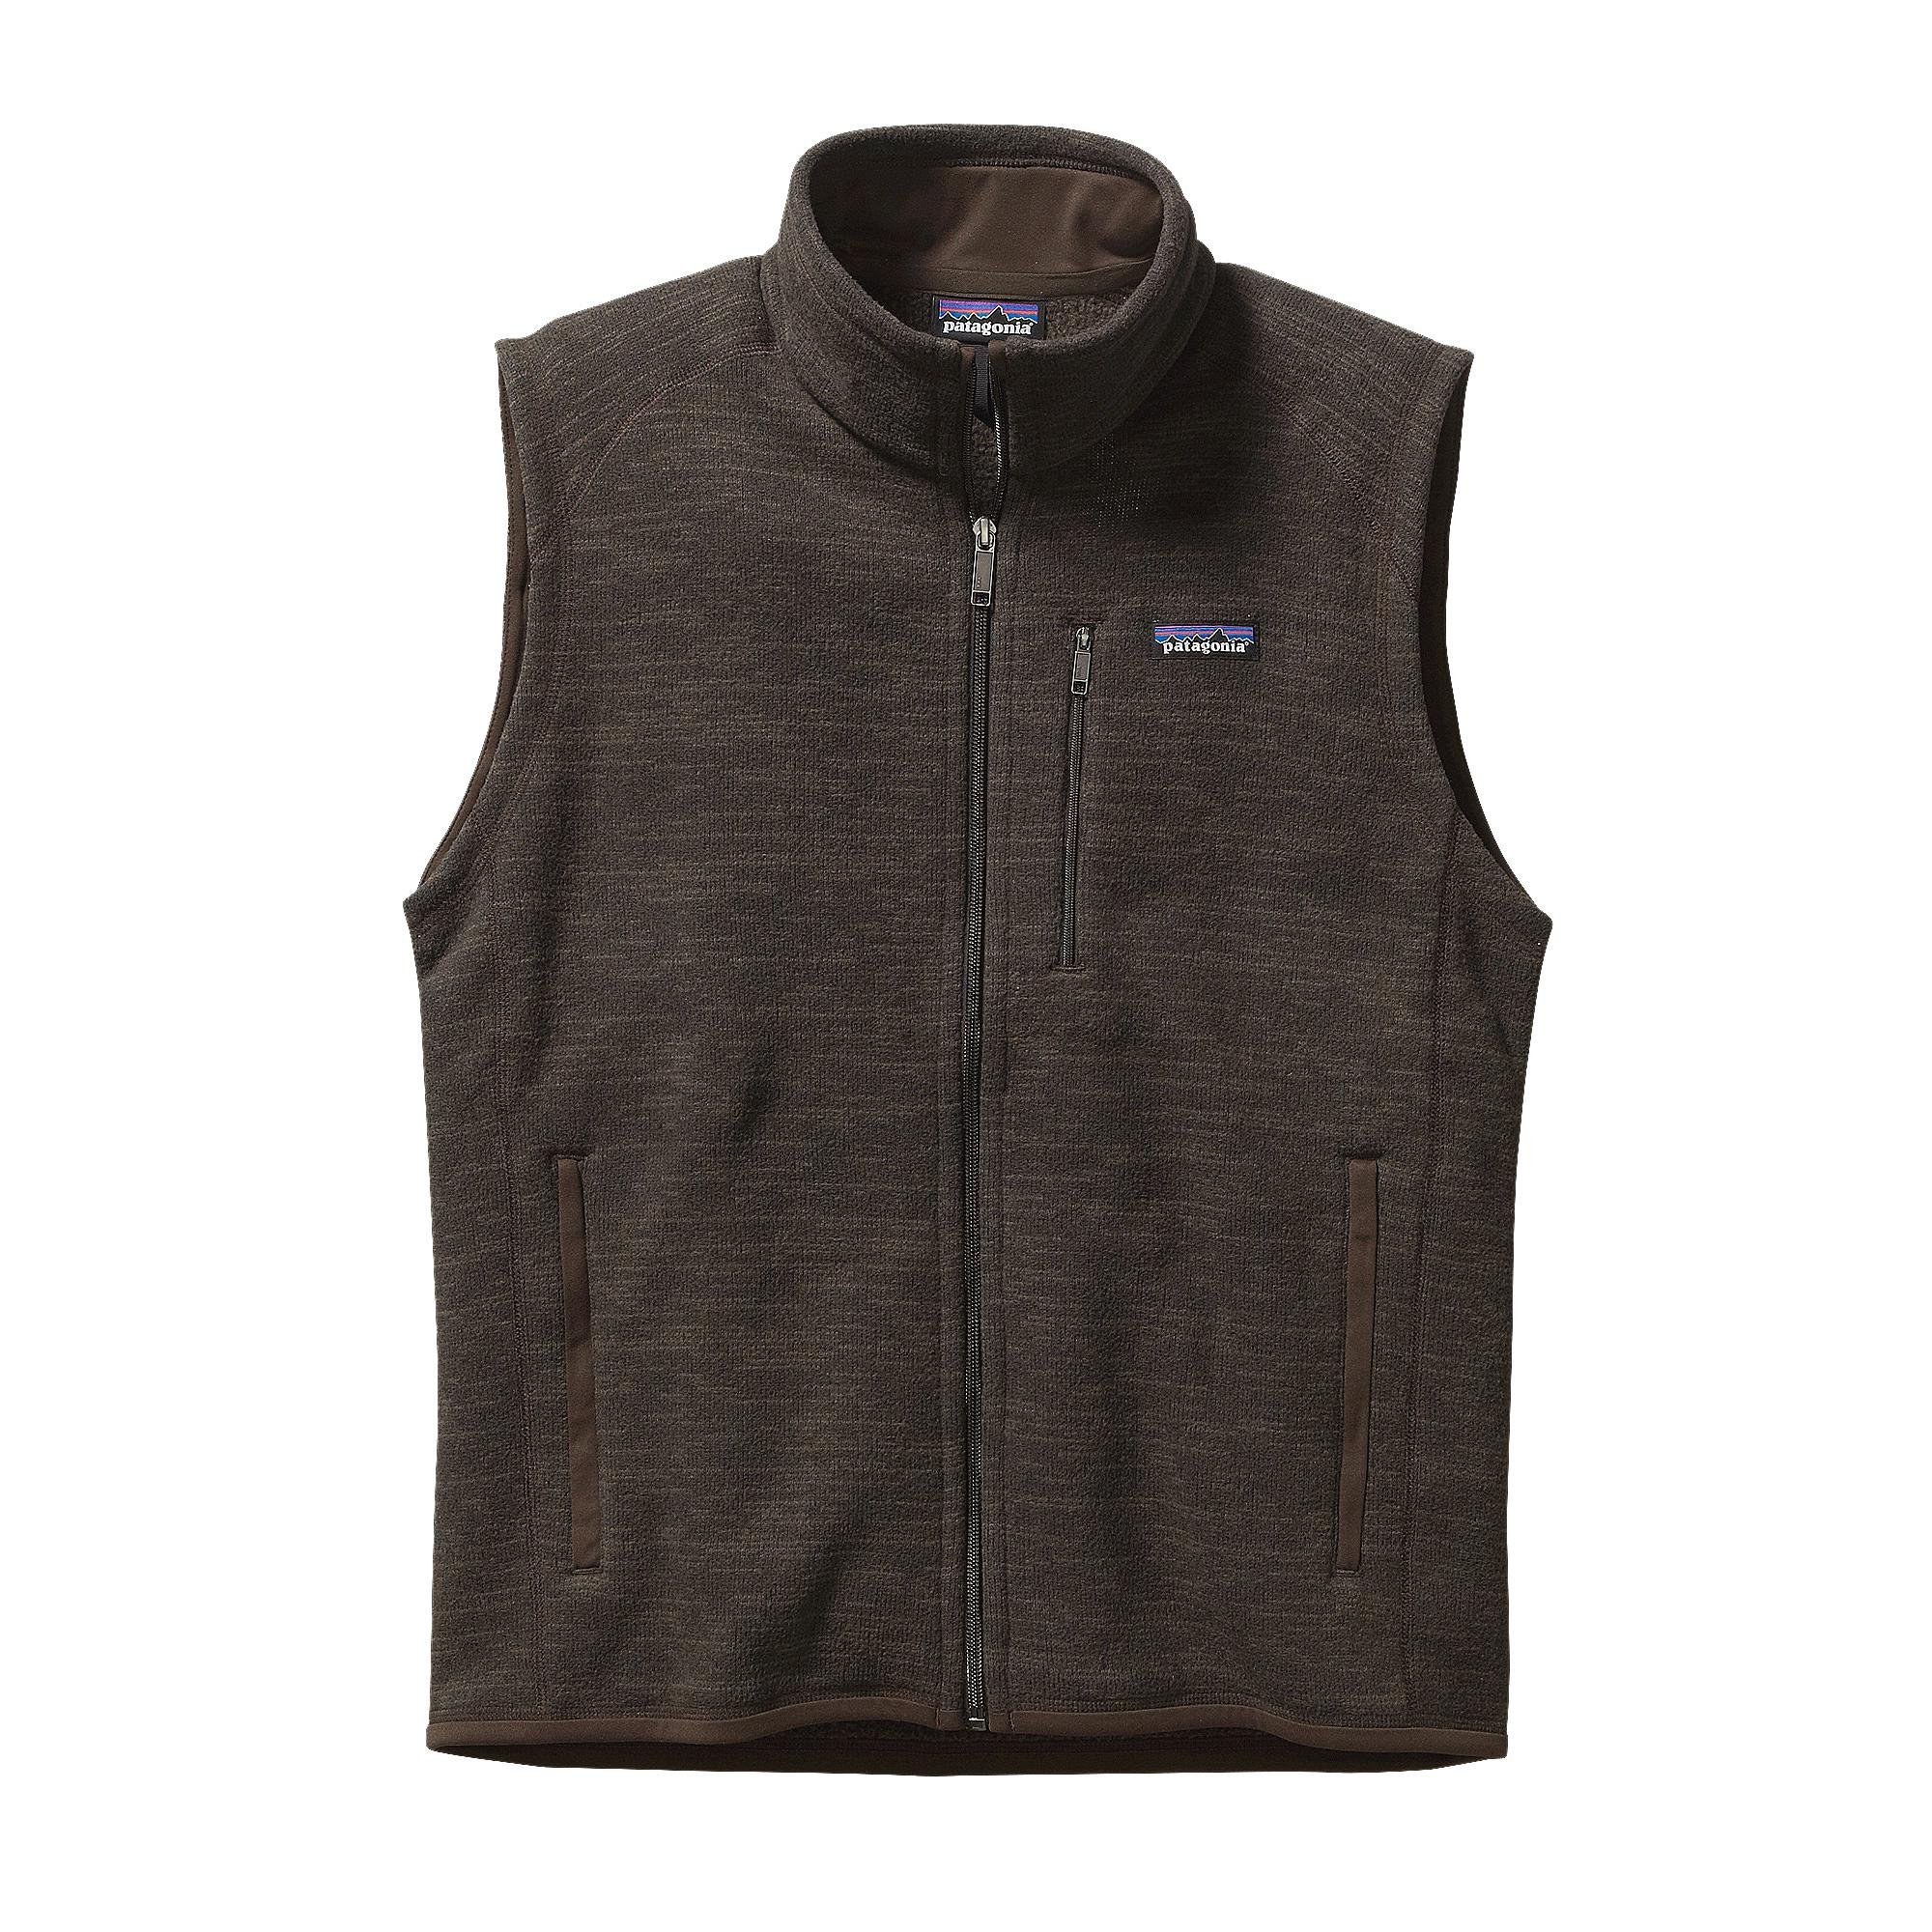 Patagonia Men Better Sweater Vest Dark Walnut 25881/DWA - Size Small by Patagonia